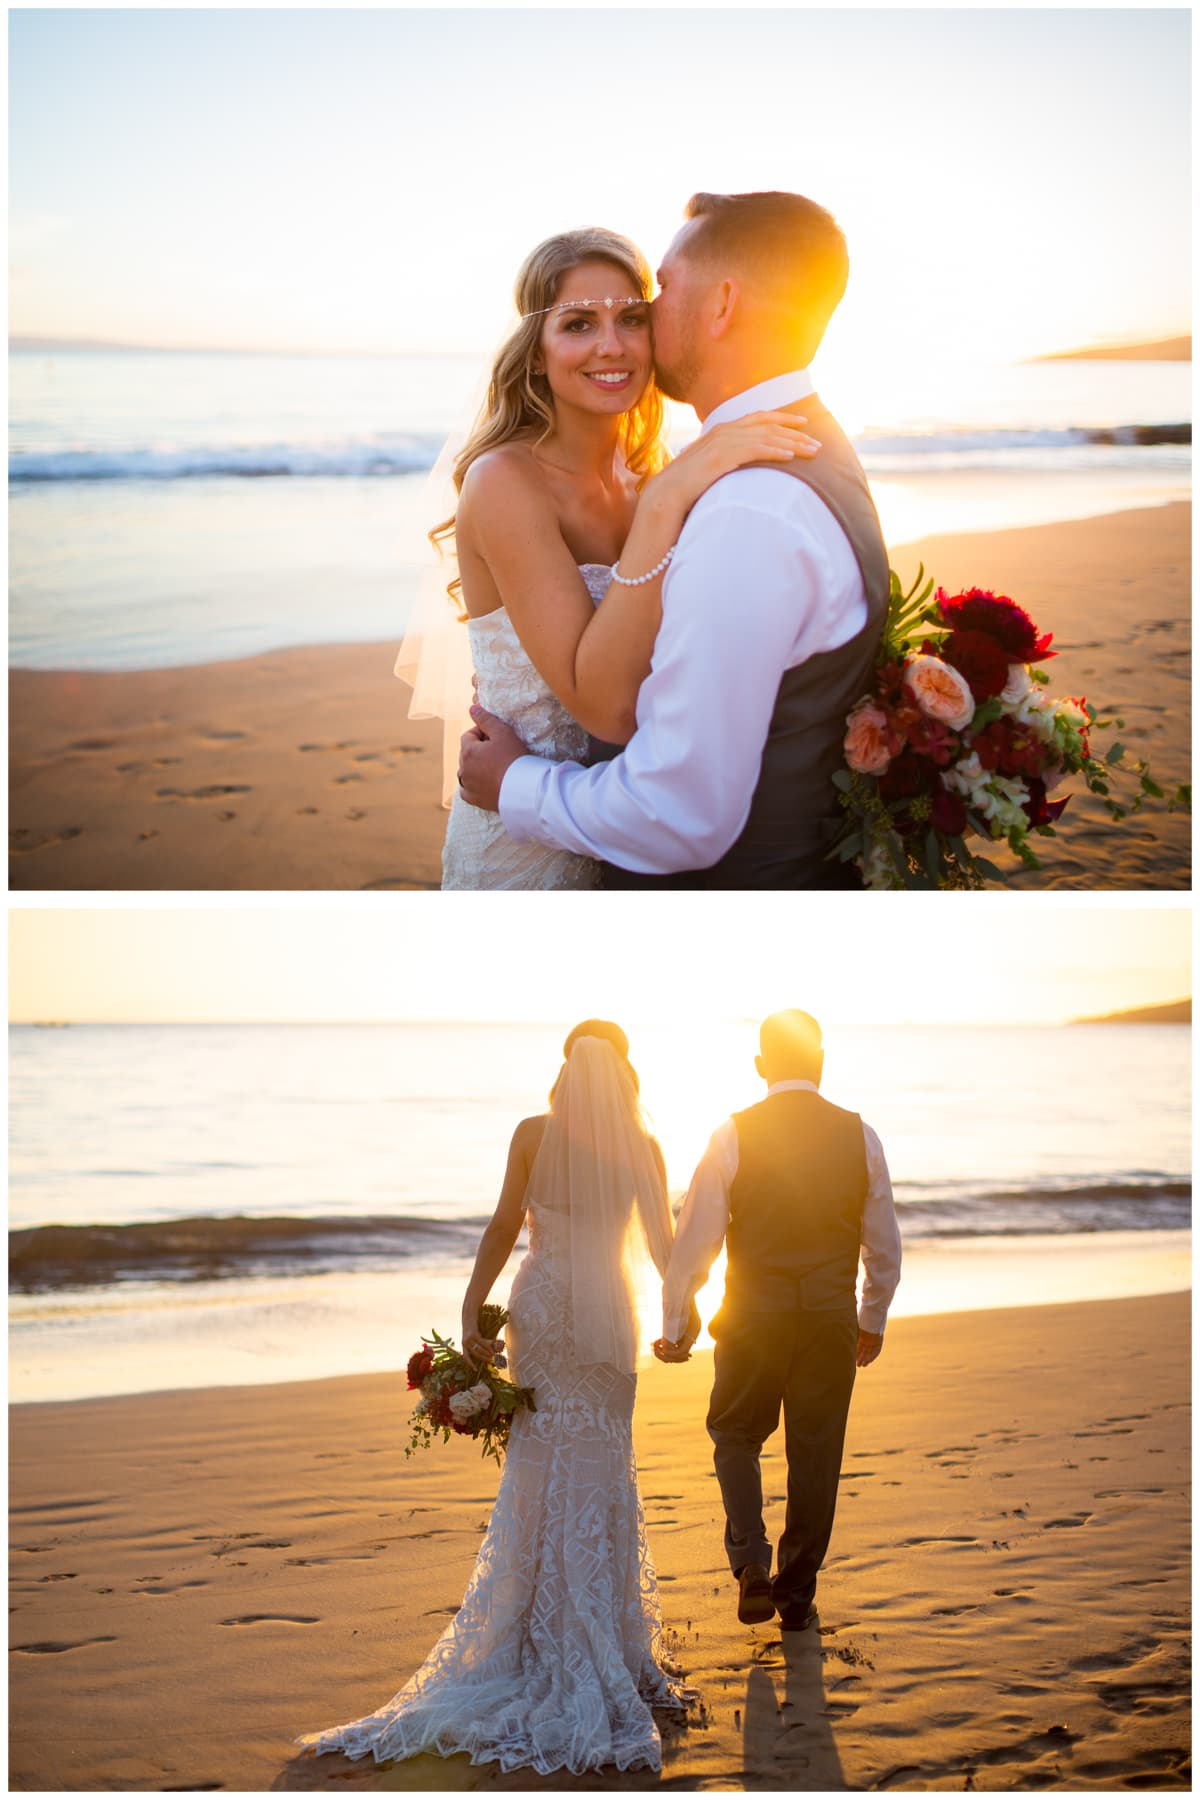 Sunset photos Sugar Beach Maui Wedding #Sugarbeachwedding #mauiwedding #hawaiiweddings